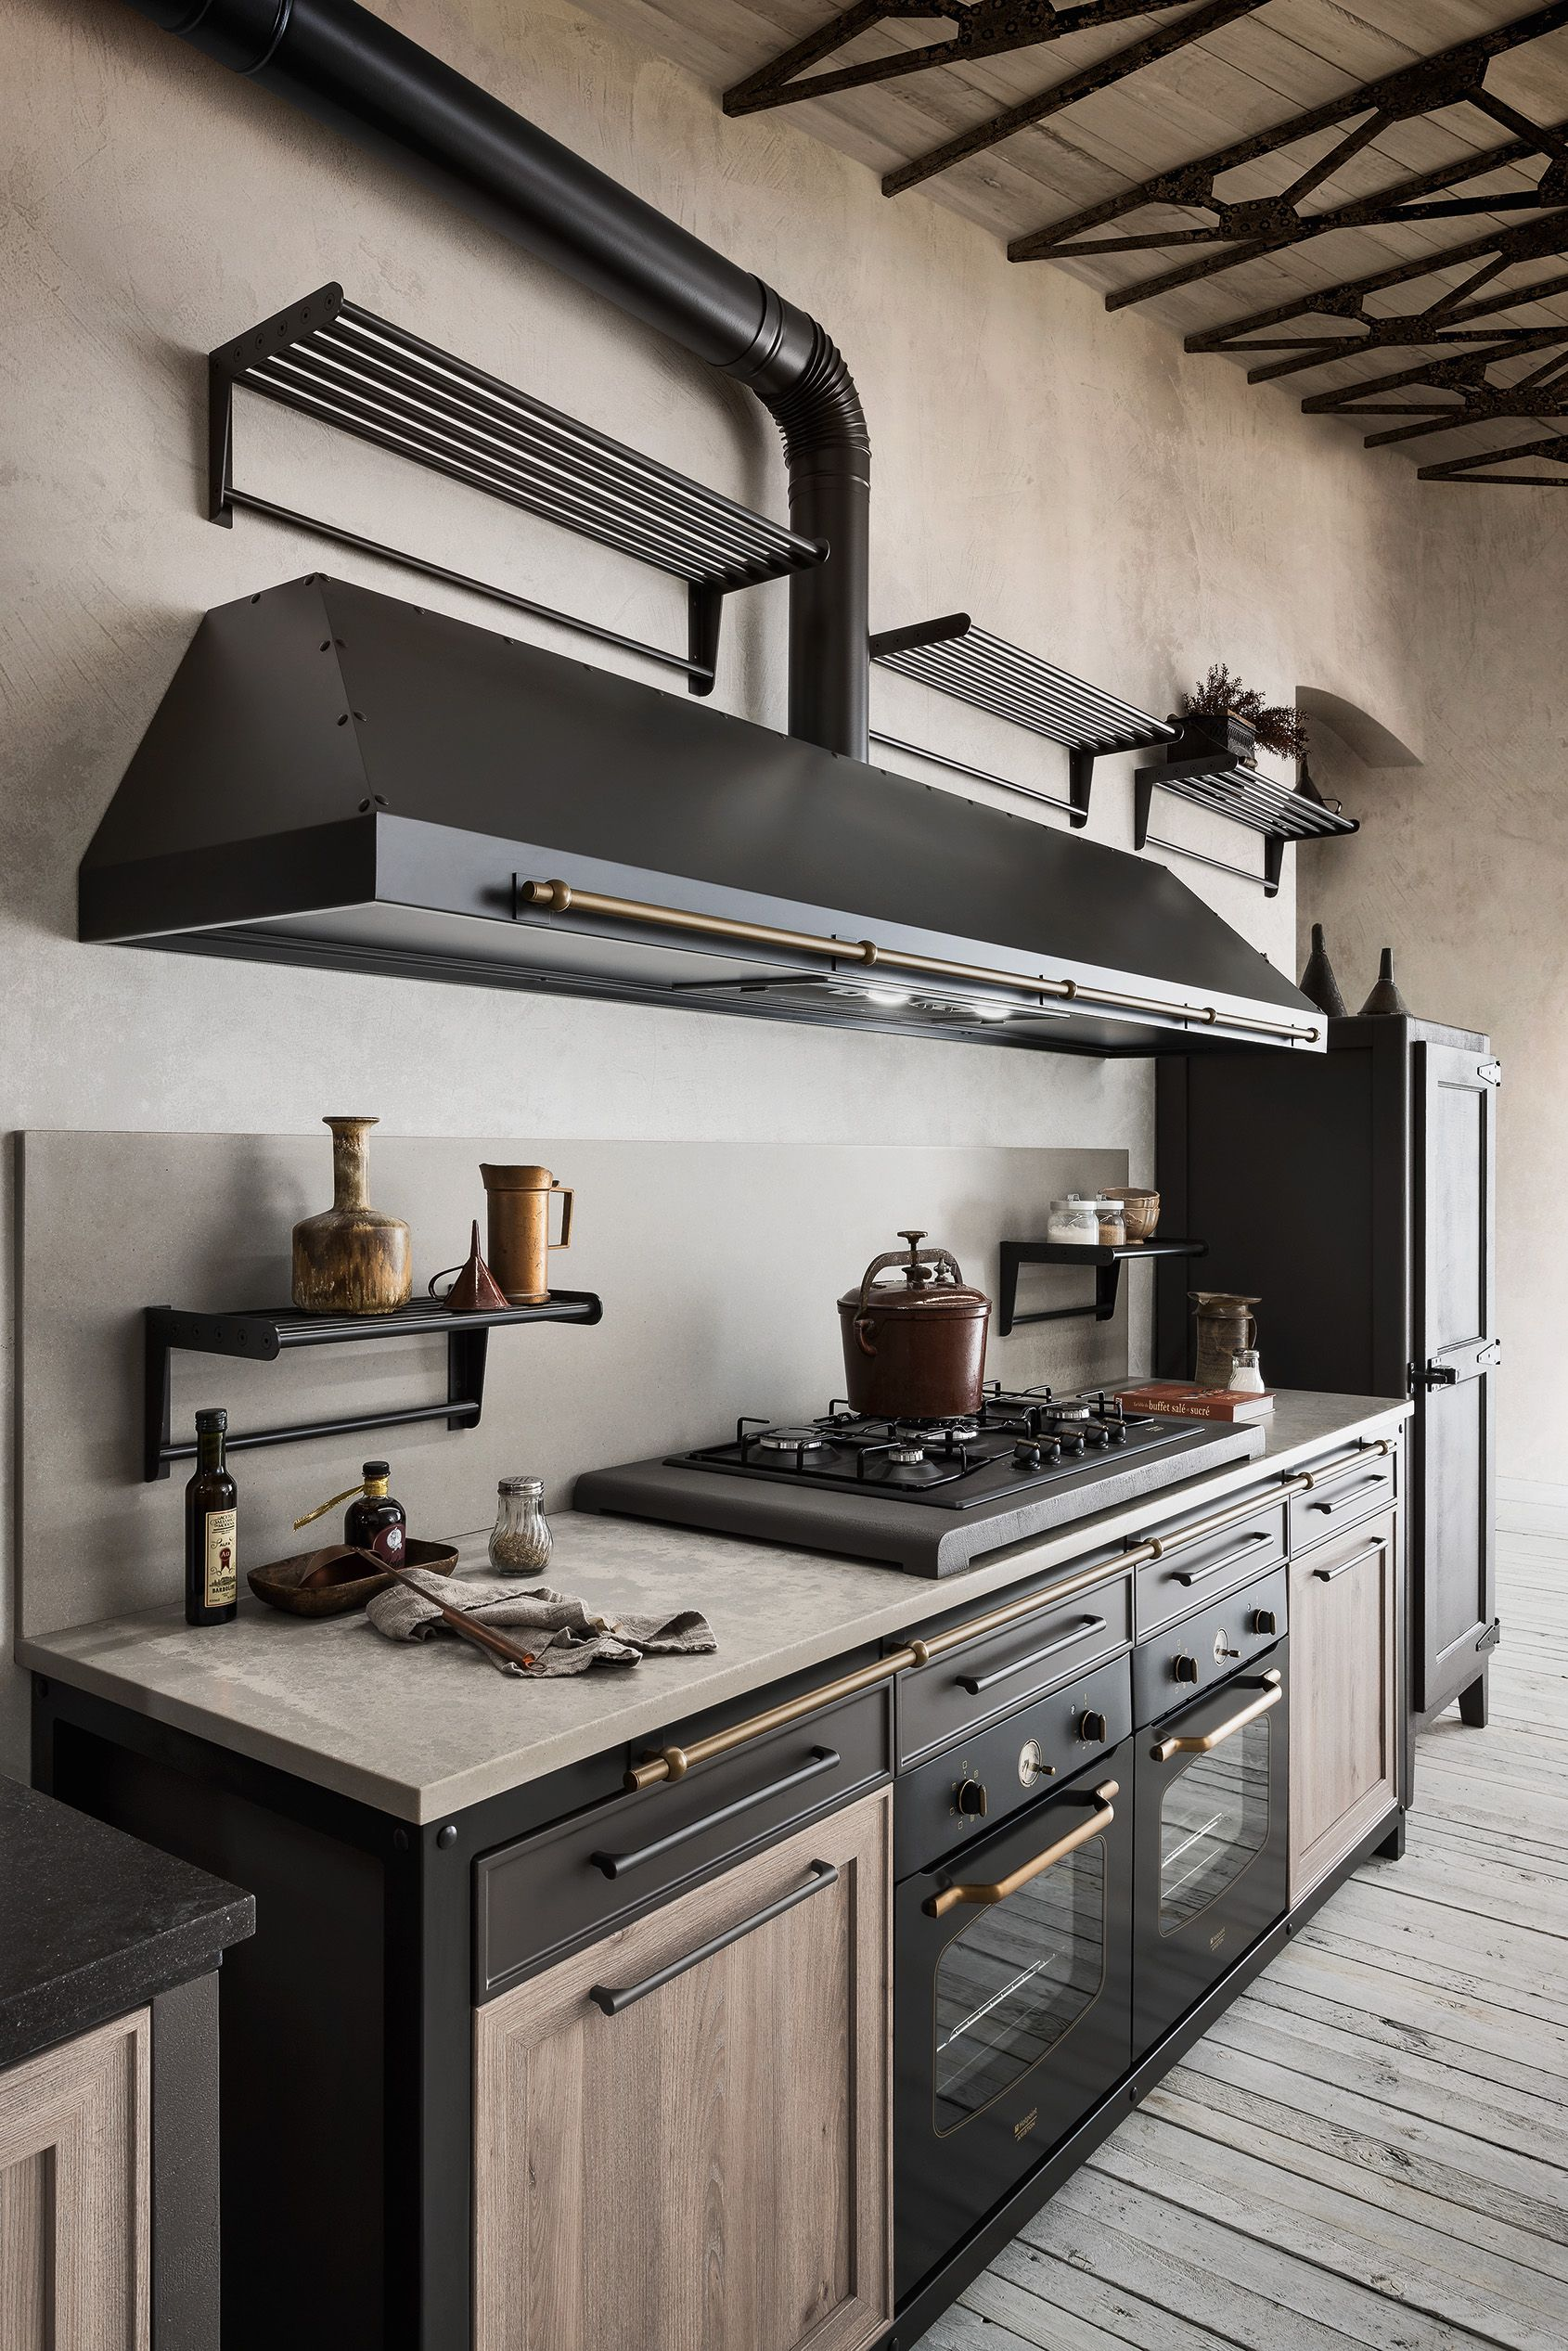 Ar-Tre | Cucine & Cucine | kitchen | Pinterest | Kitchens, Kitchen ...